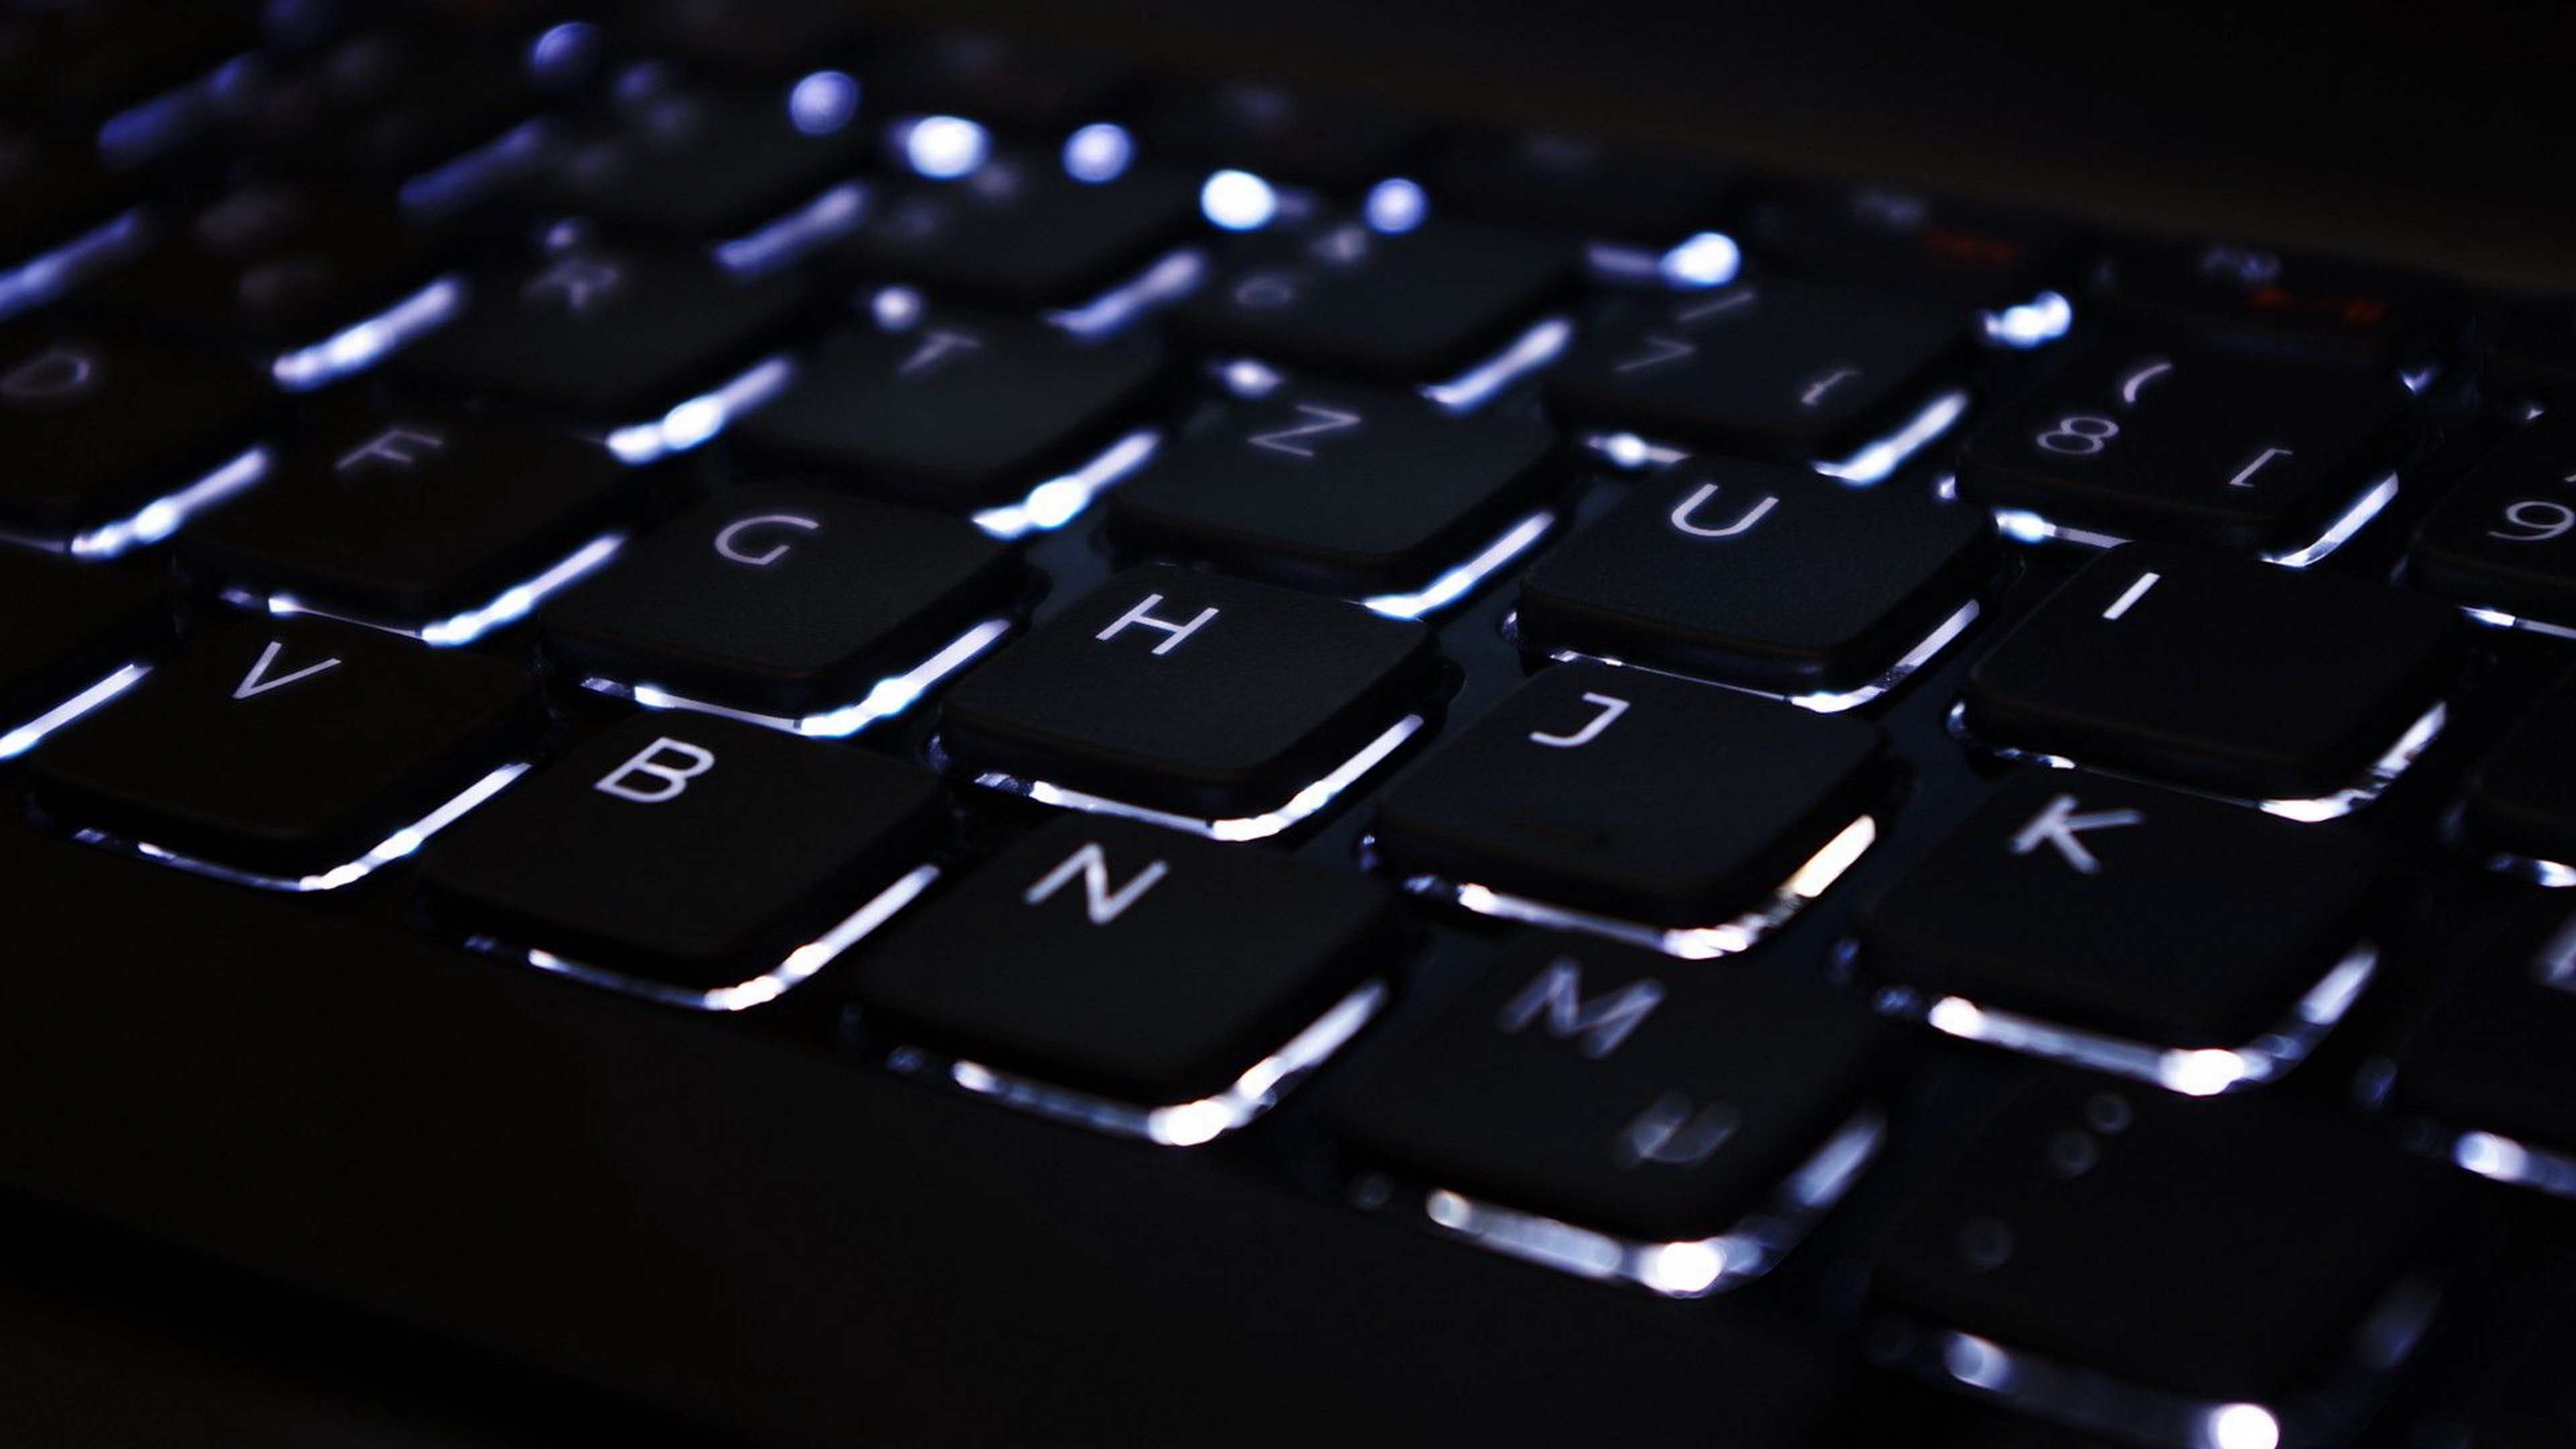 backlit keyboard wallpaper 4k background